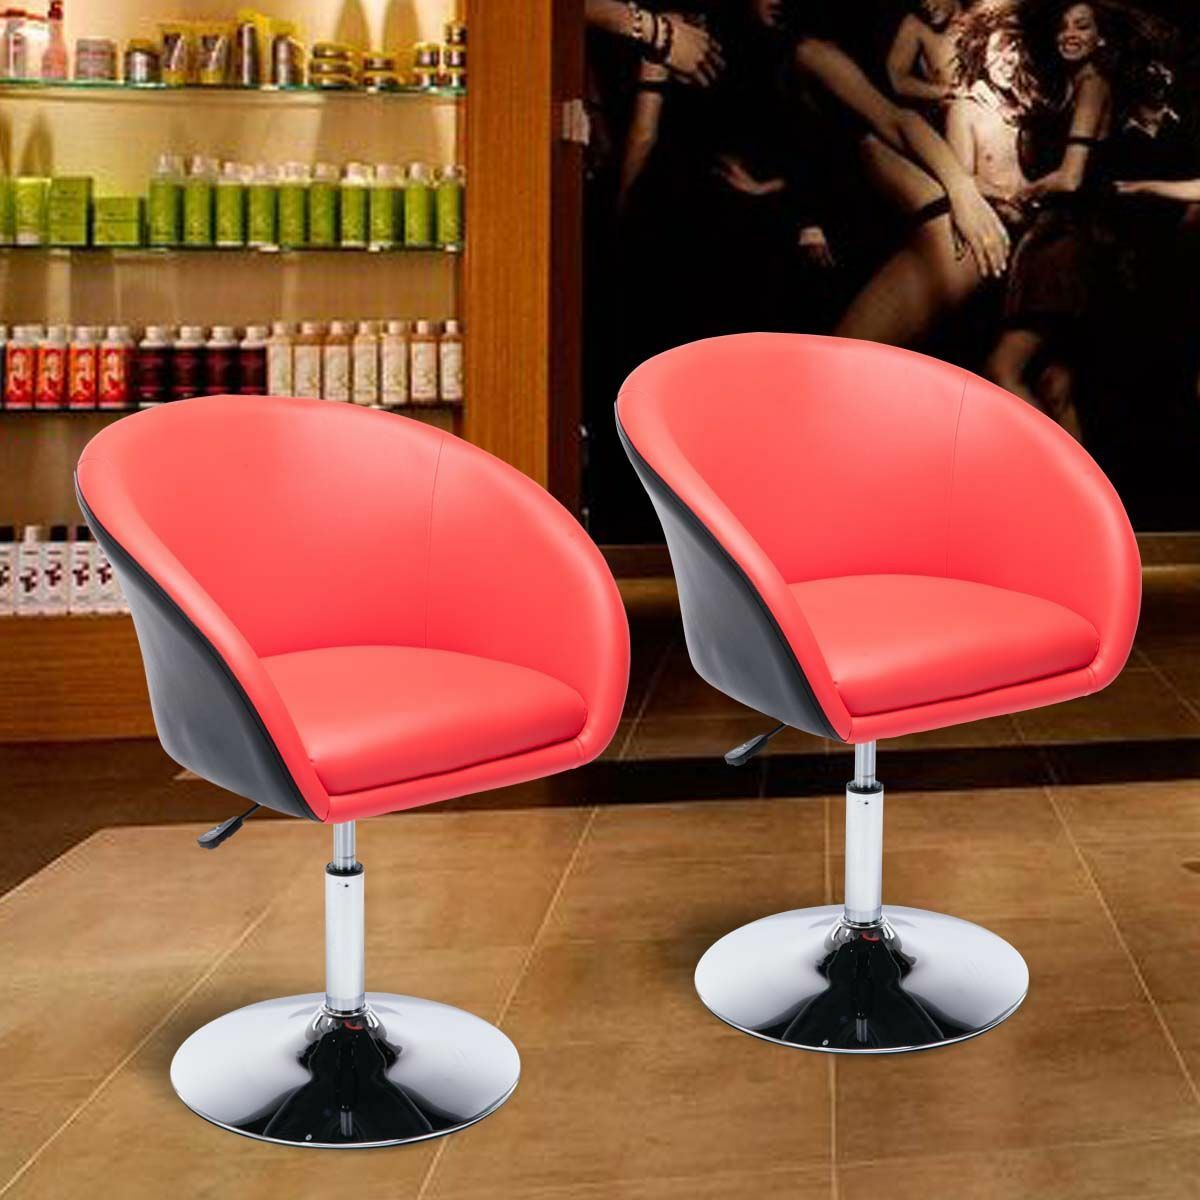 Prime Details About Egg Shaped Barber Salon Chair Tufted Bar Stool Pub Chair Accent Chairs Set Of 2 Interior Design Ideas Inesswwsoteloinfo